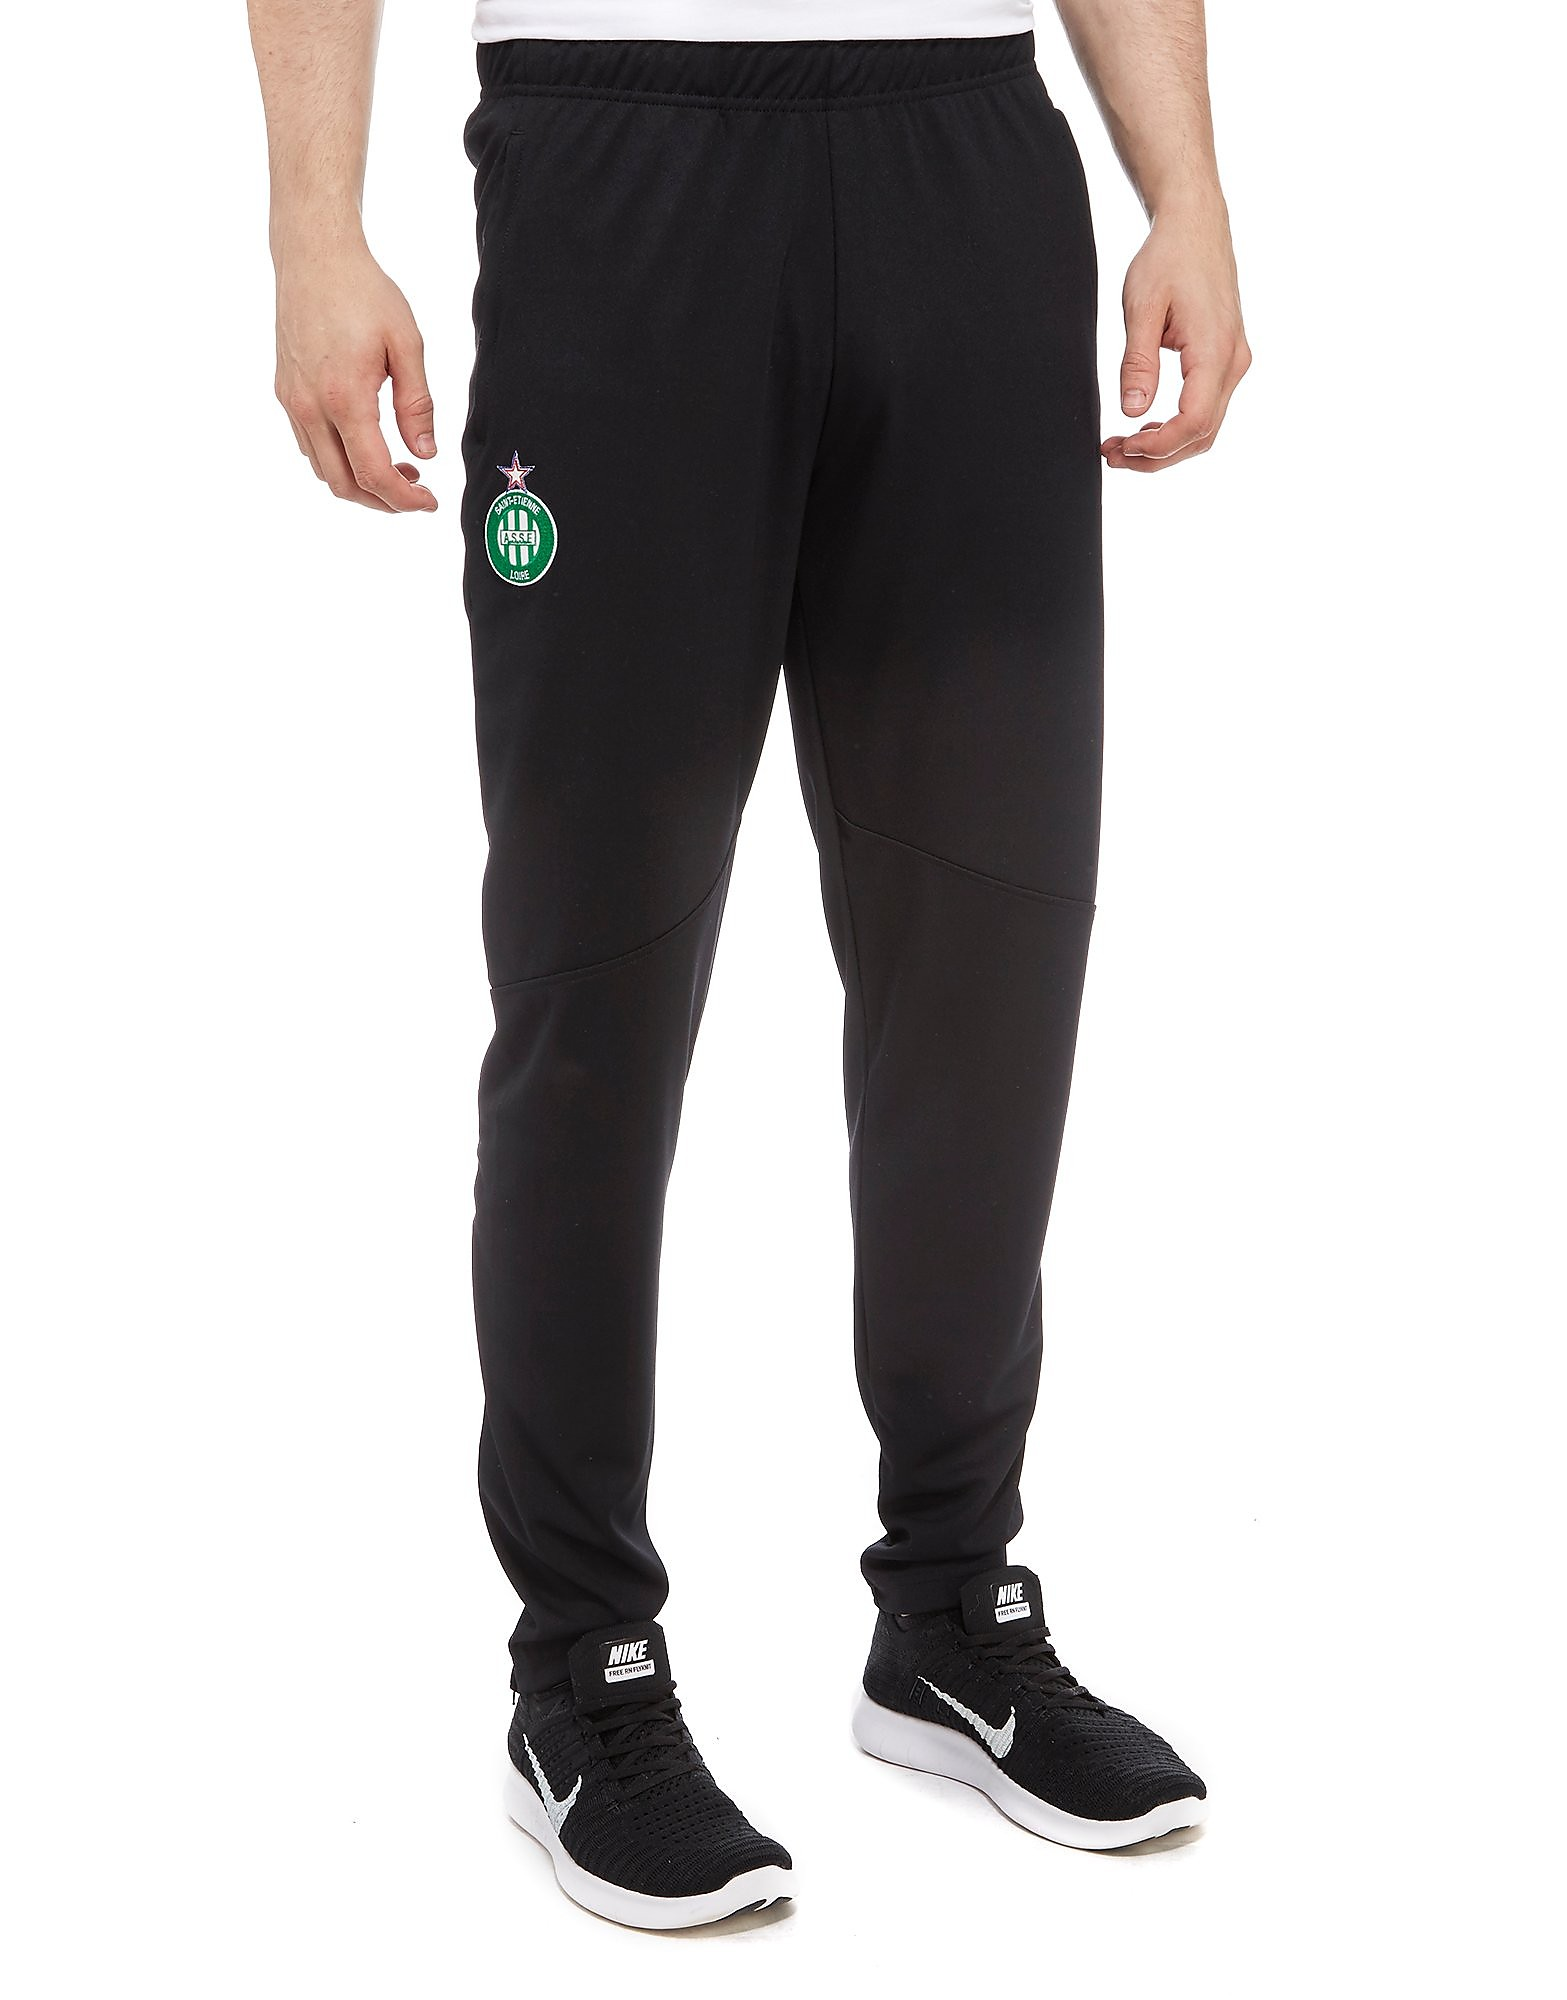 Le Coq Sportif AS Saint-Étienne Training Pants